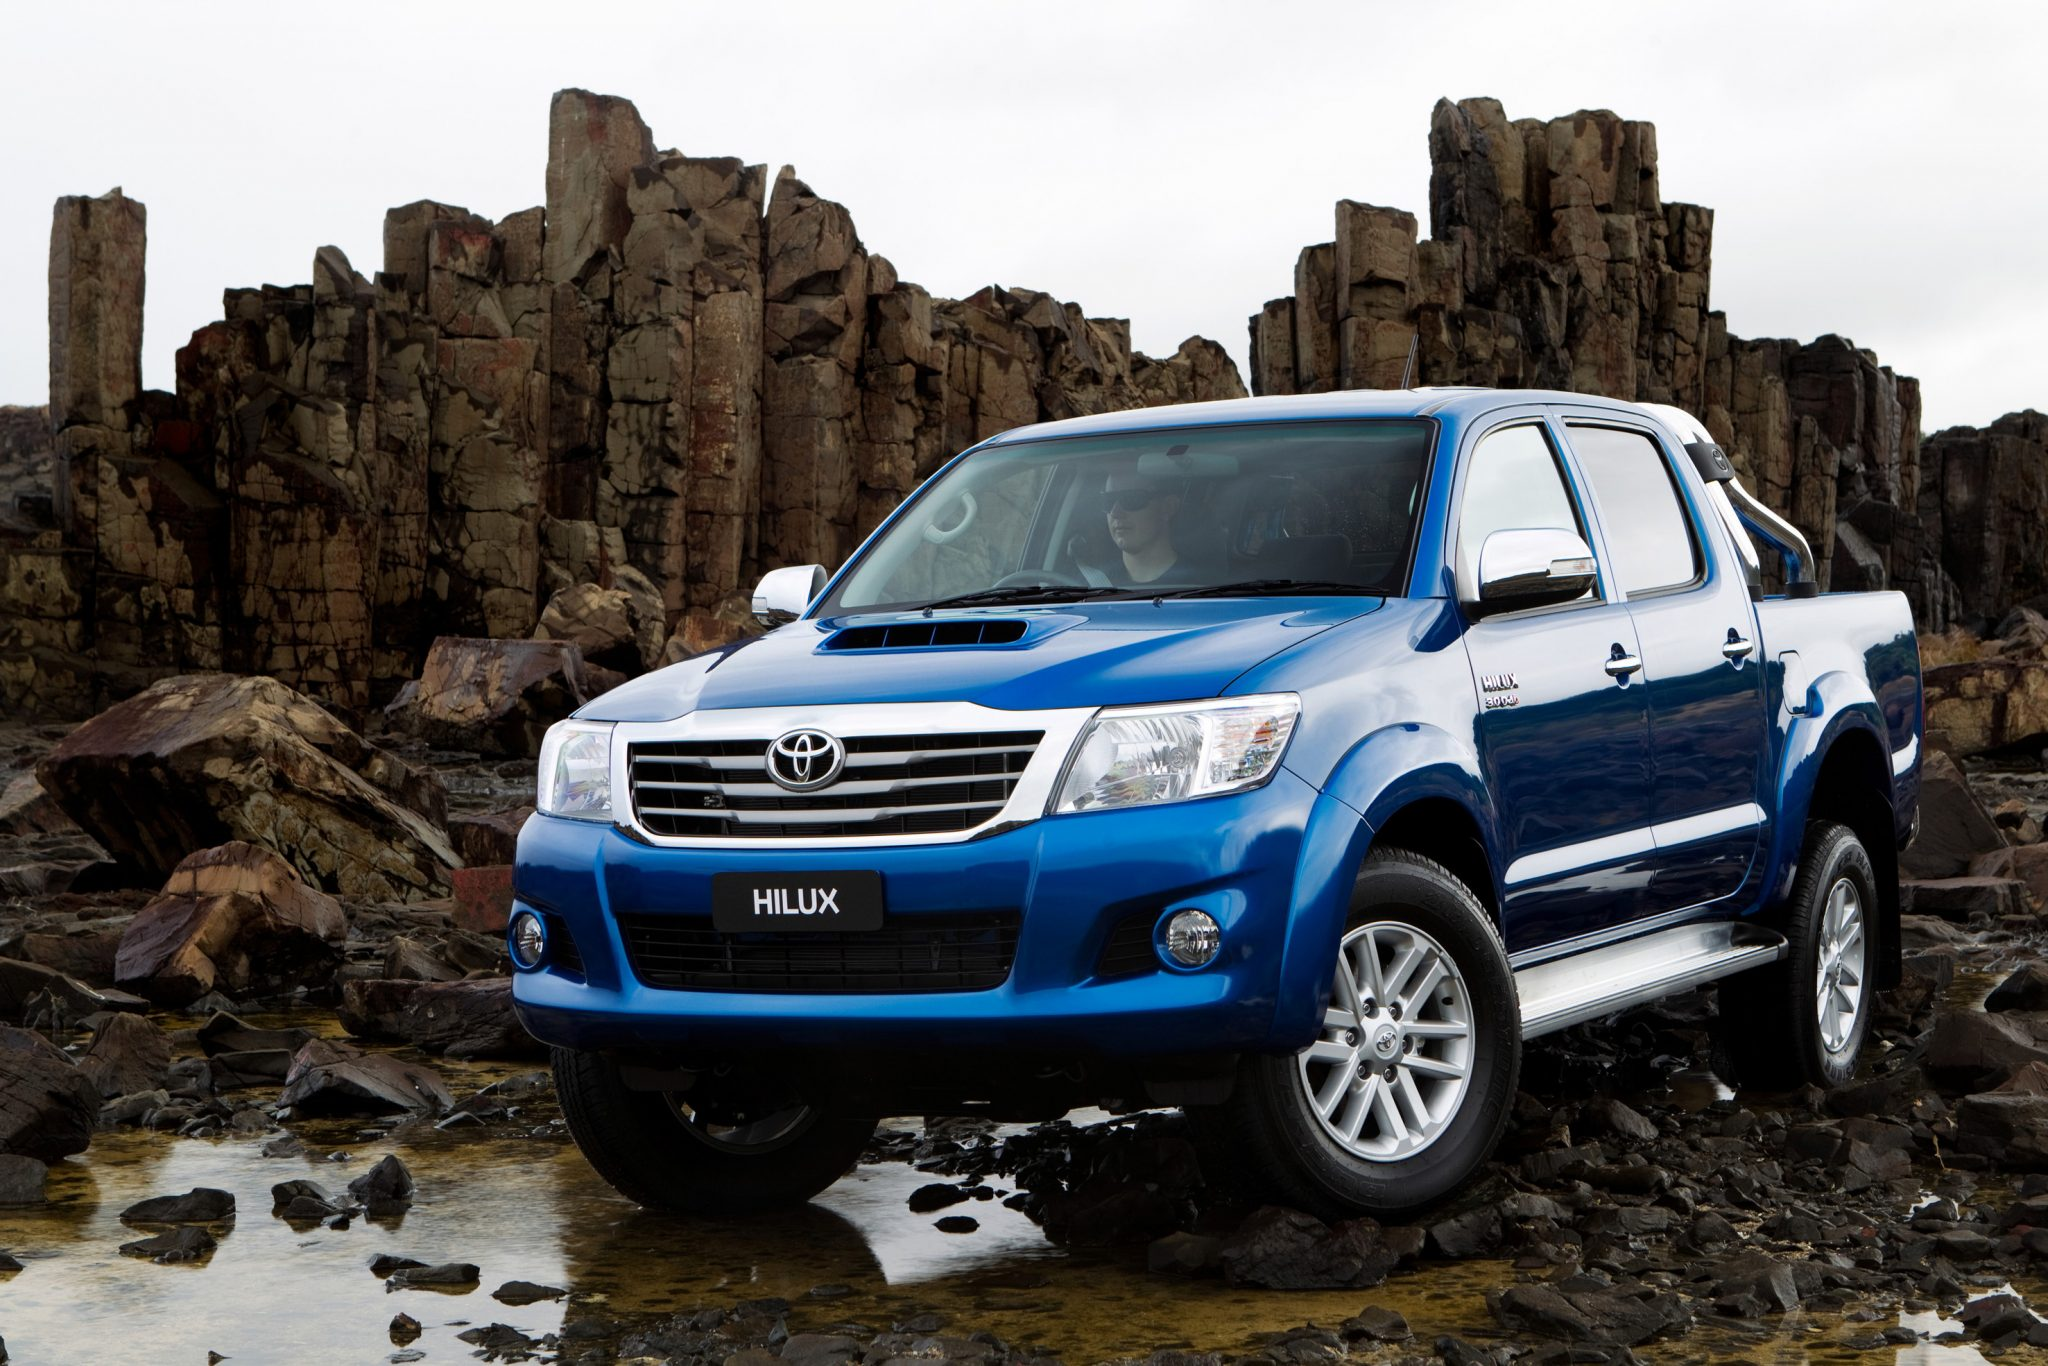 Toyota Cars - News: HiLux gains safety and convenience tech